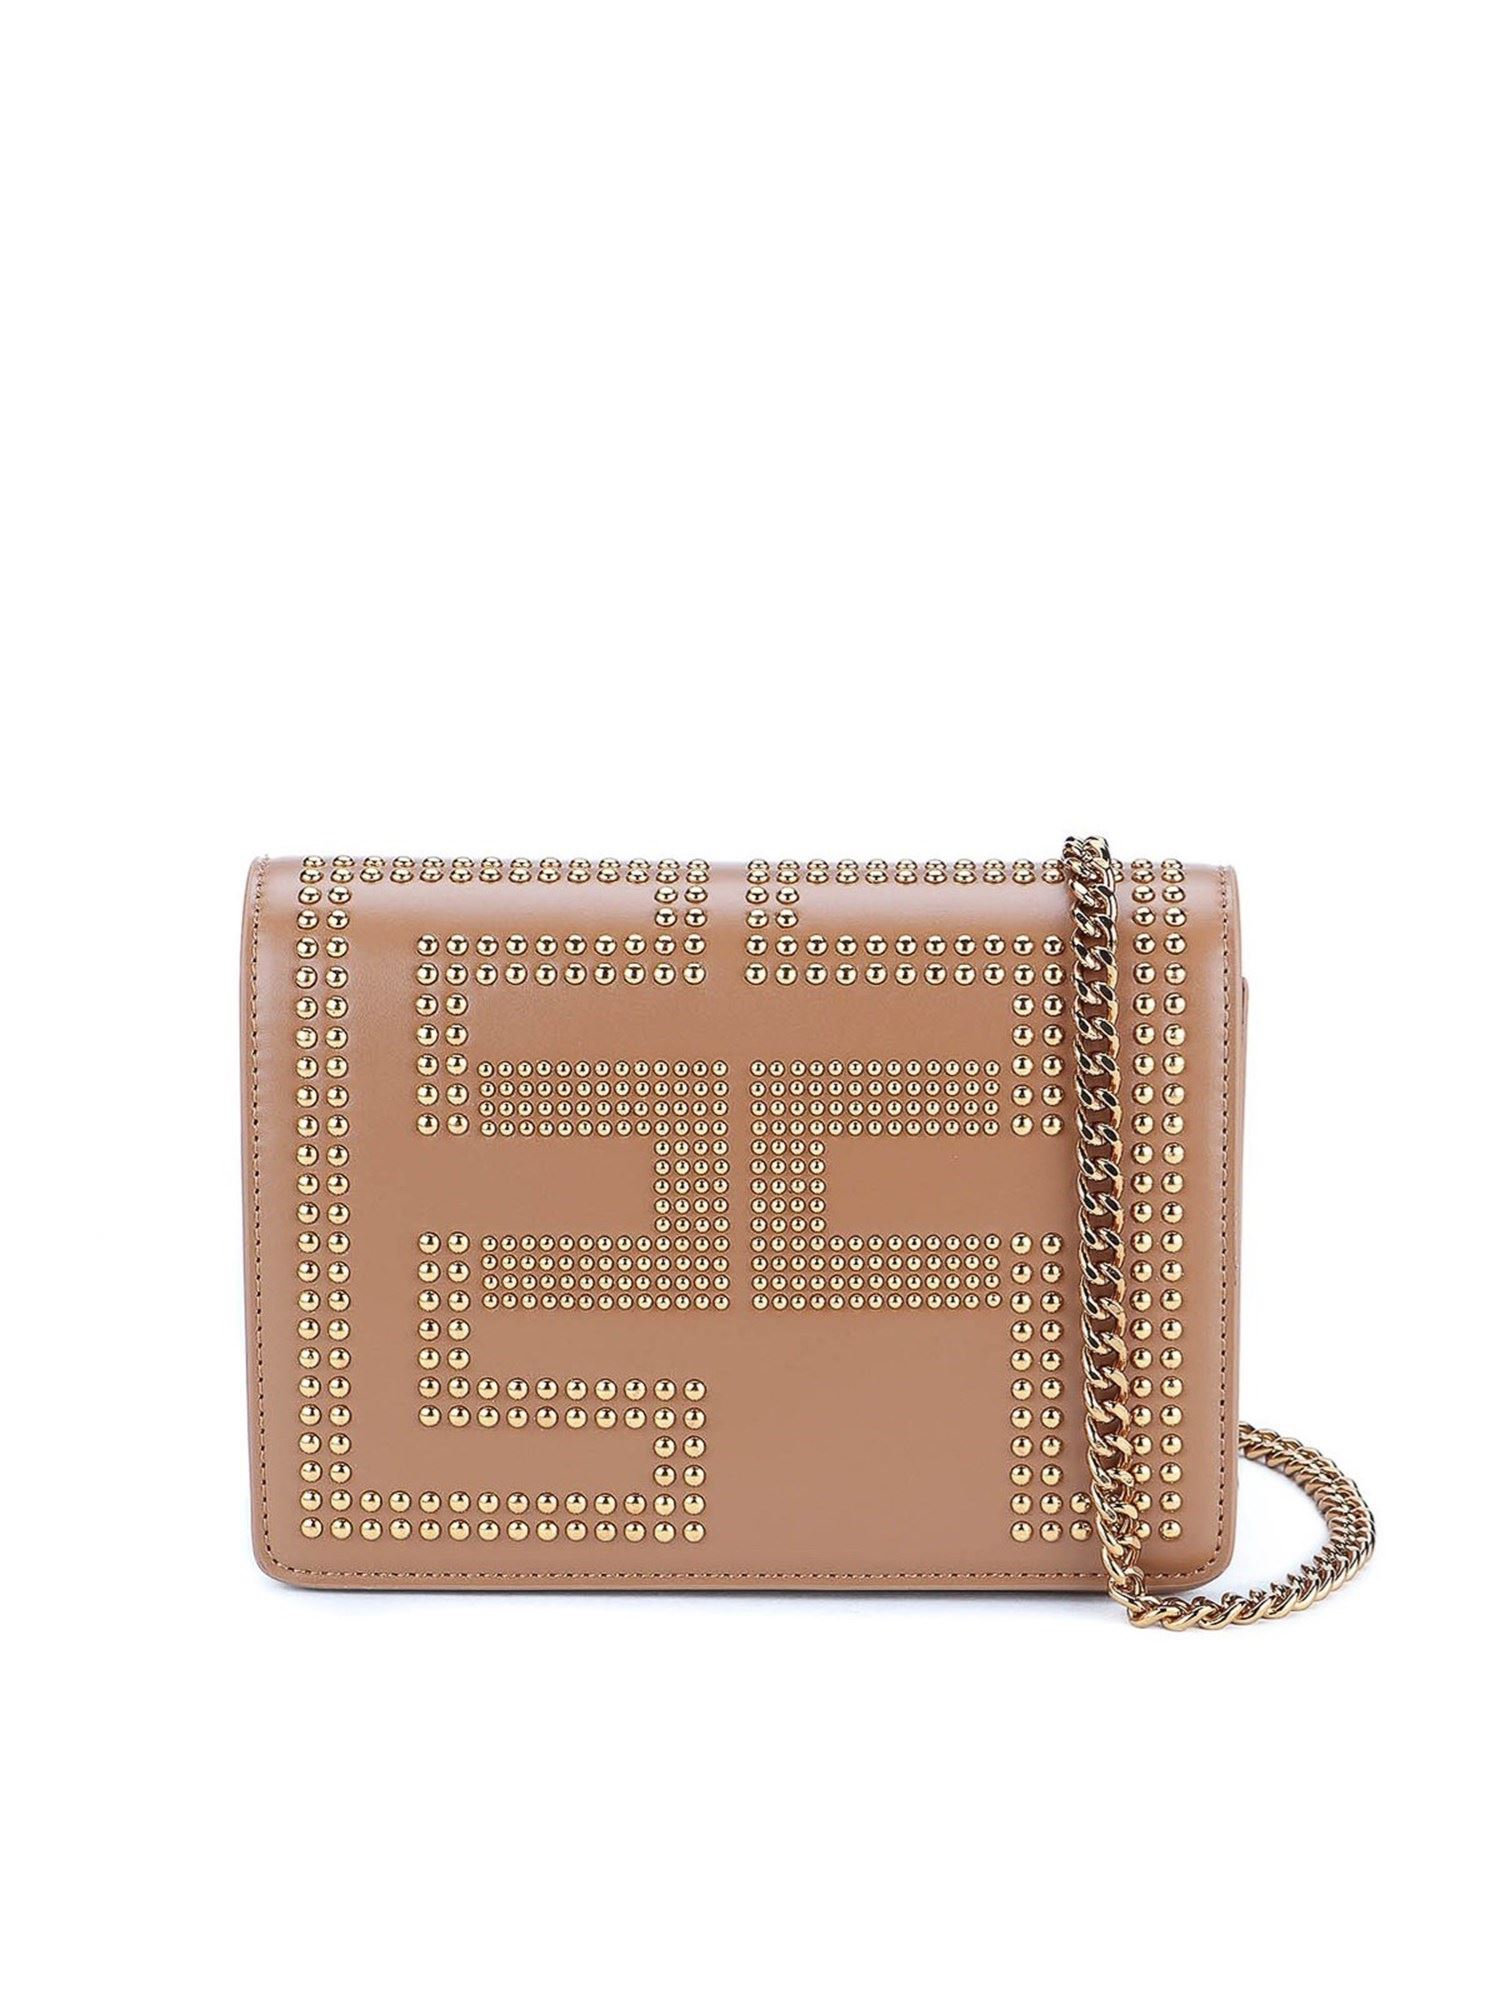 Elisabetta Franchi STUDDED LOGO CROSS BODY BAG IN CAMEL COLOR